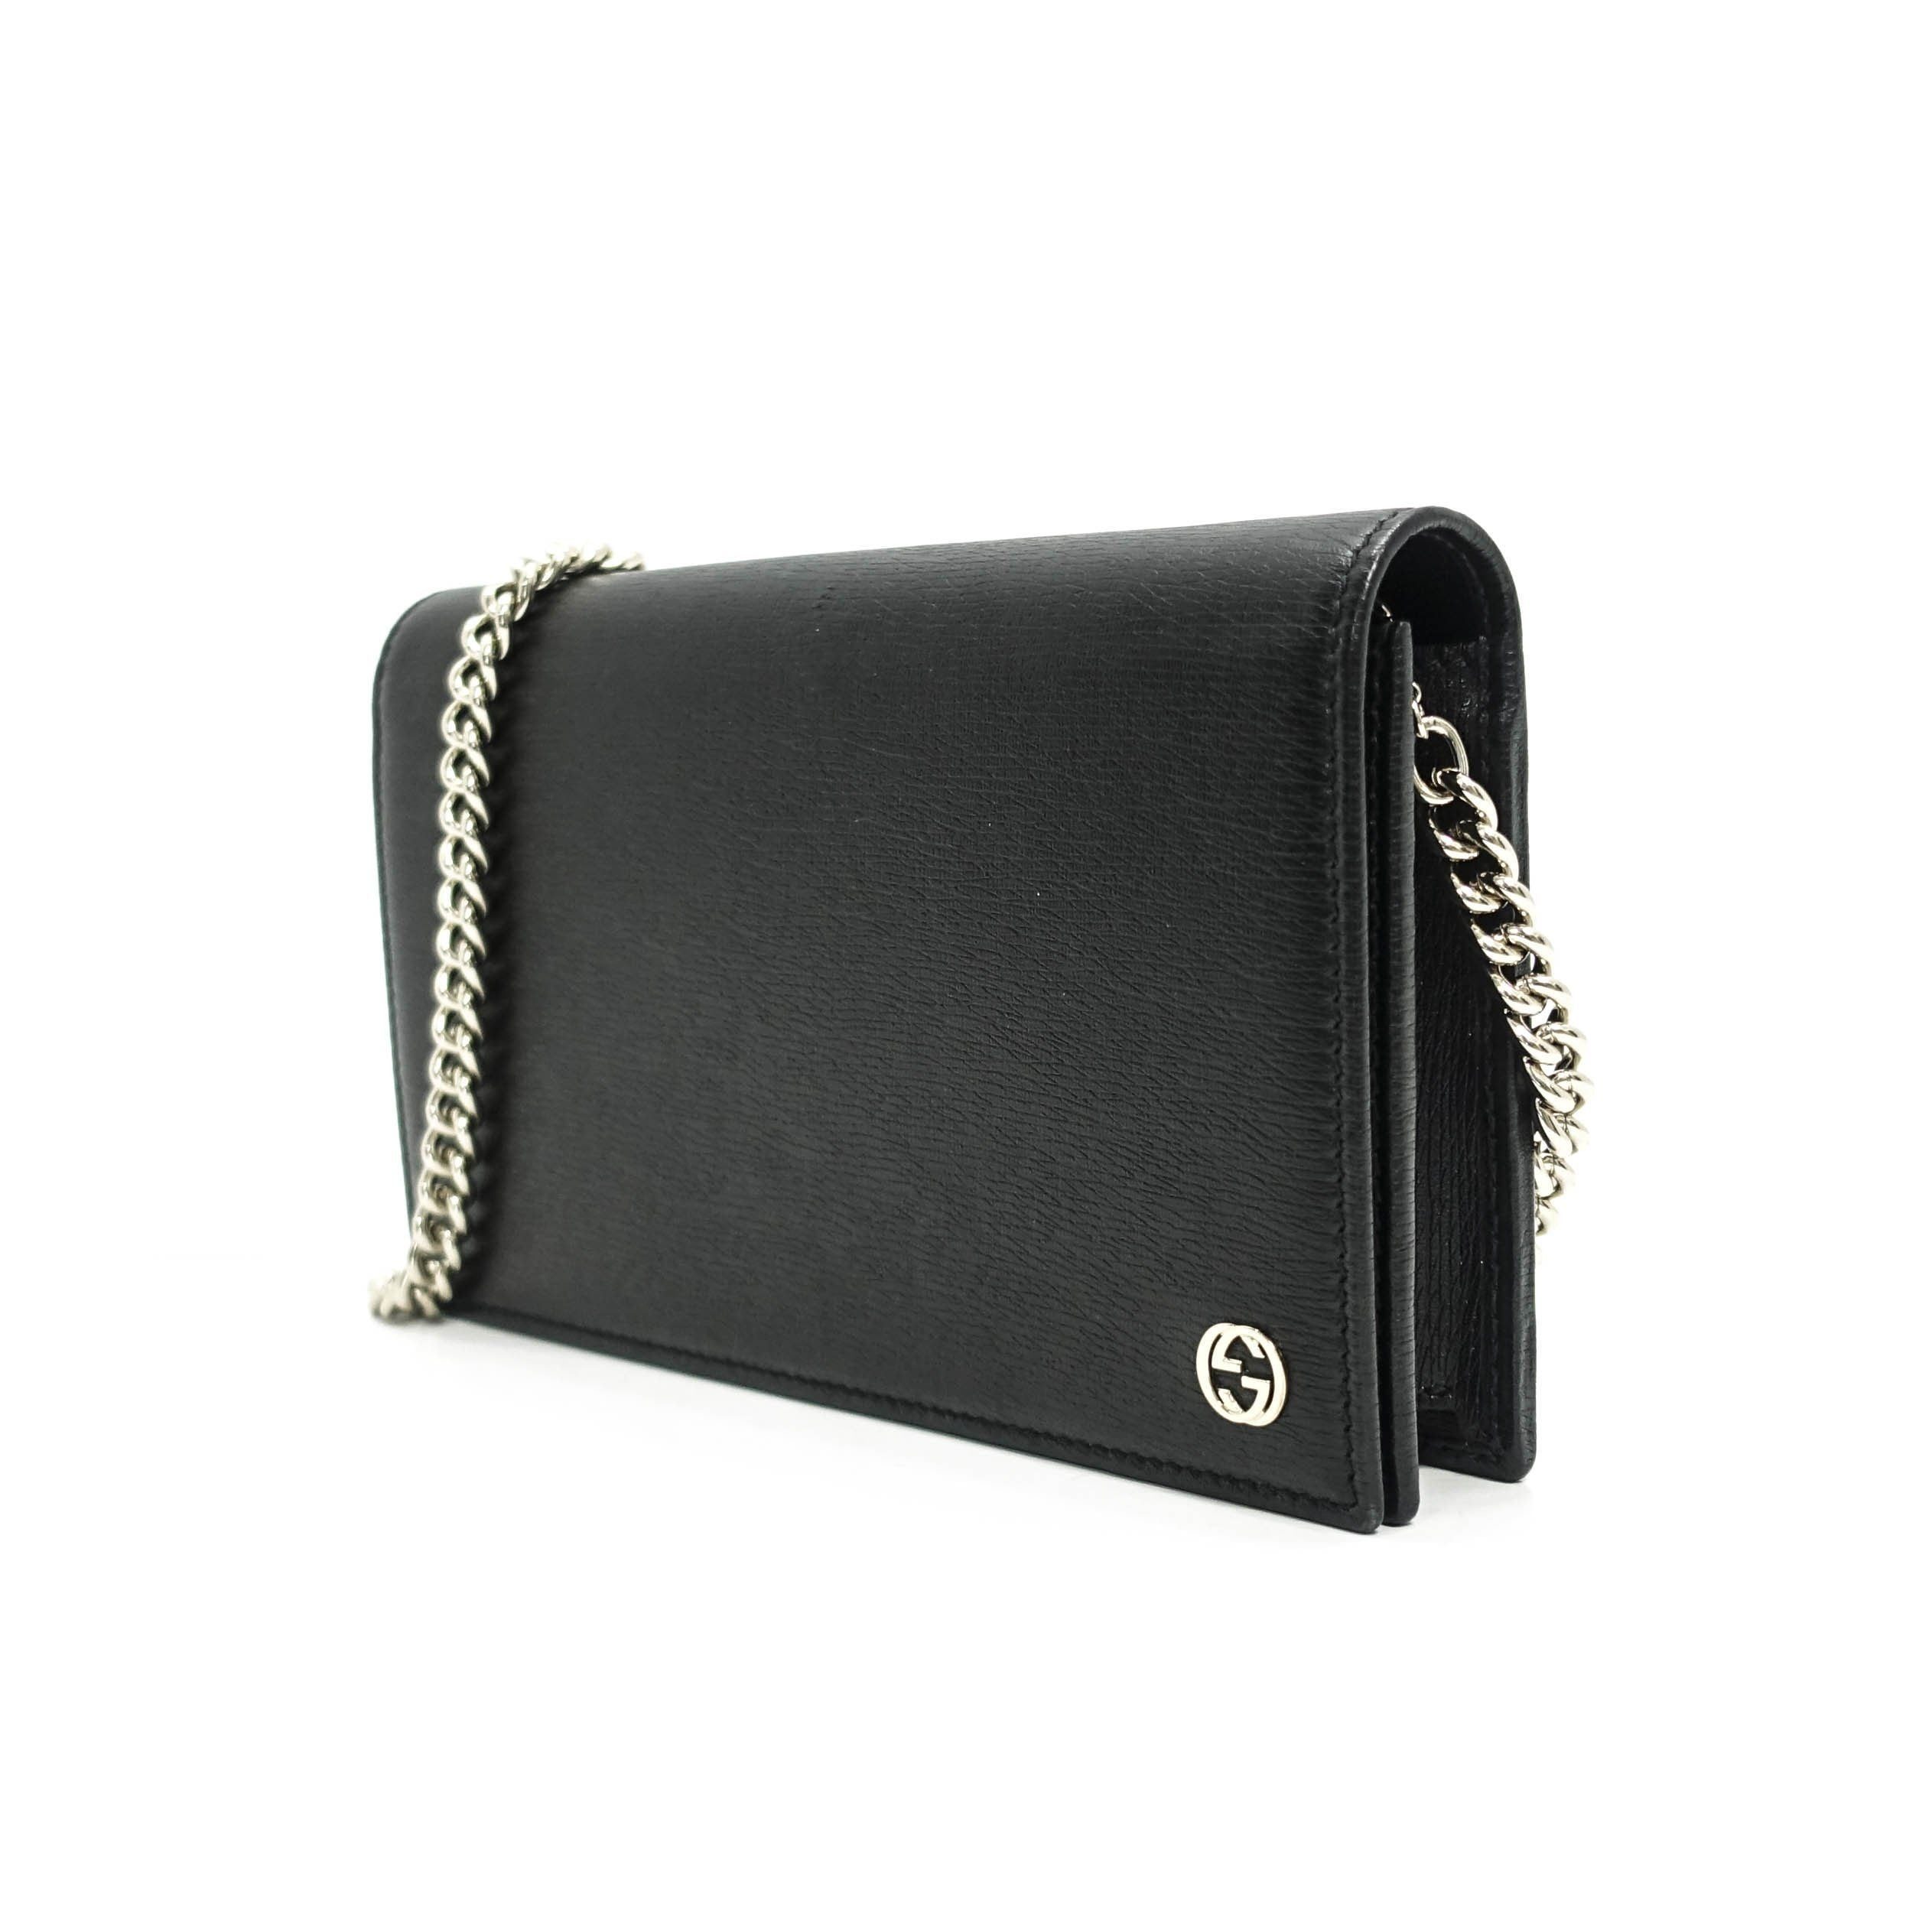 01eb5327a5af ... Gucci Betty Chain Wallet Bags Gucci ...